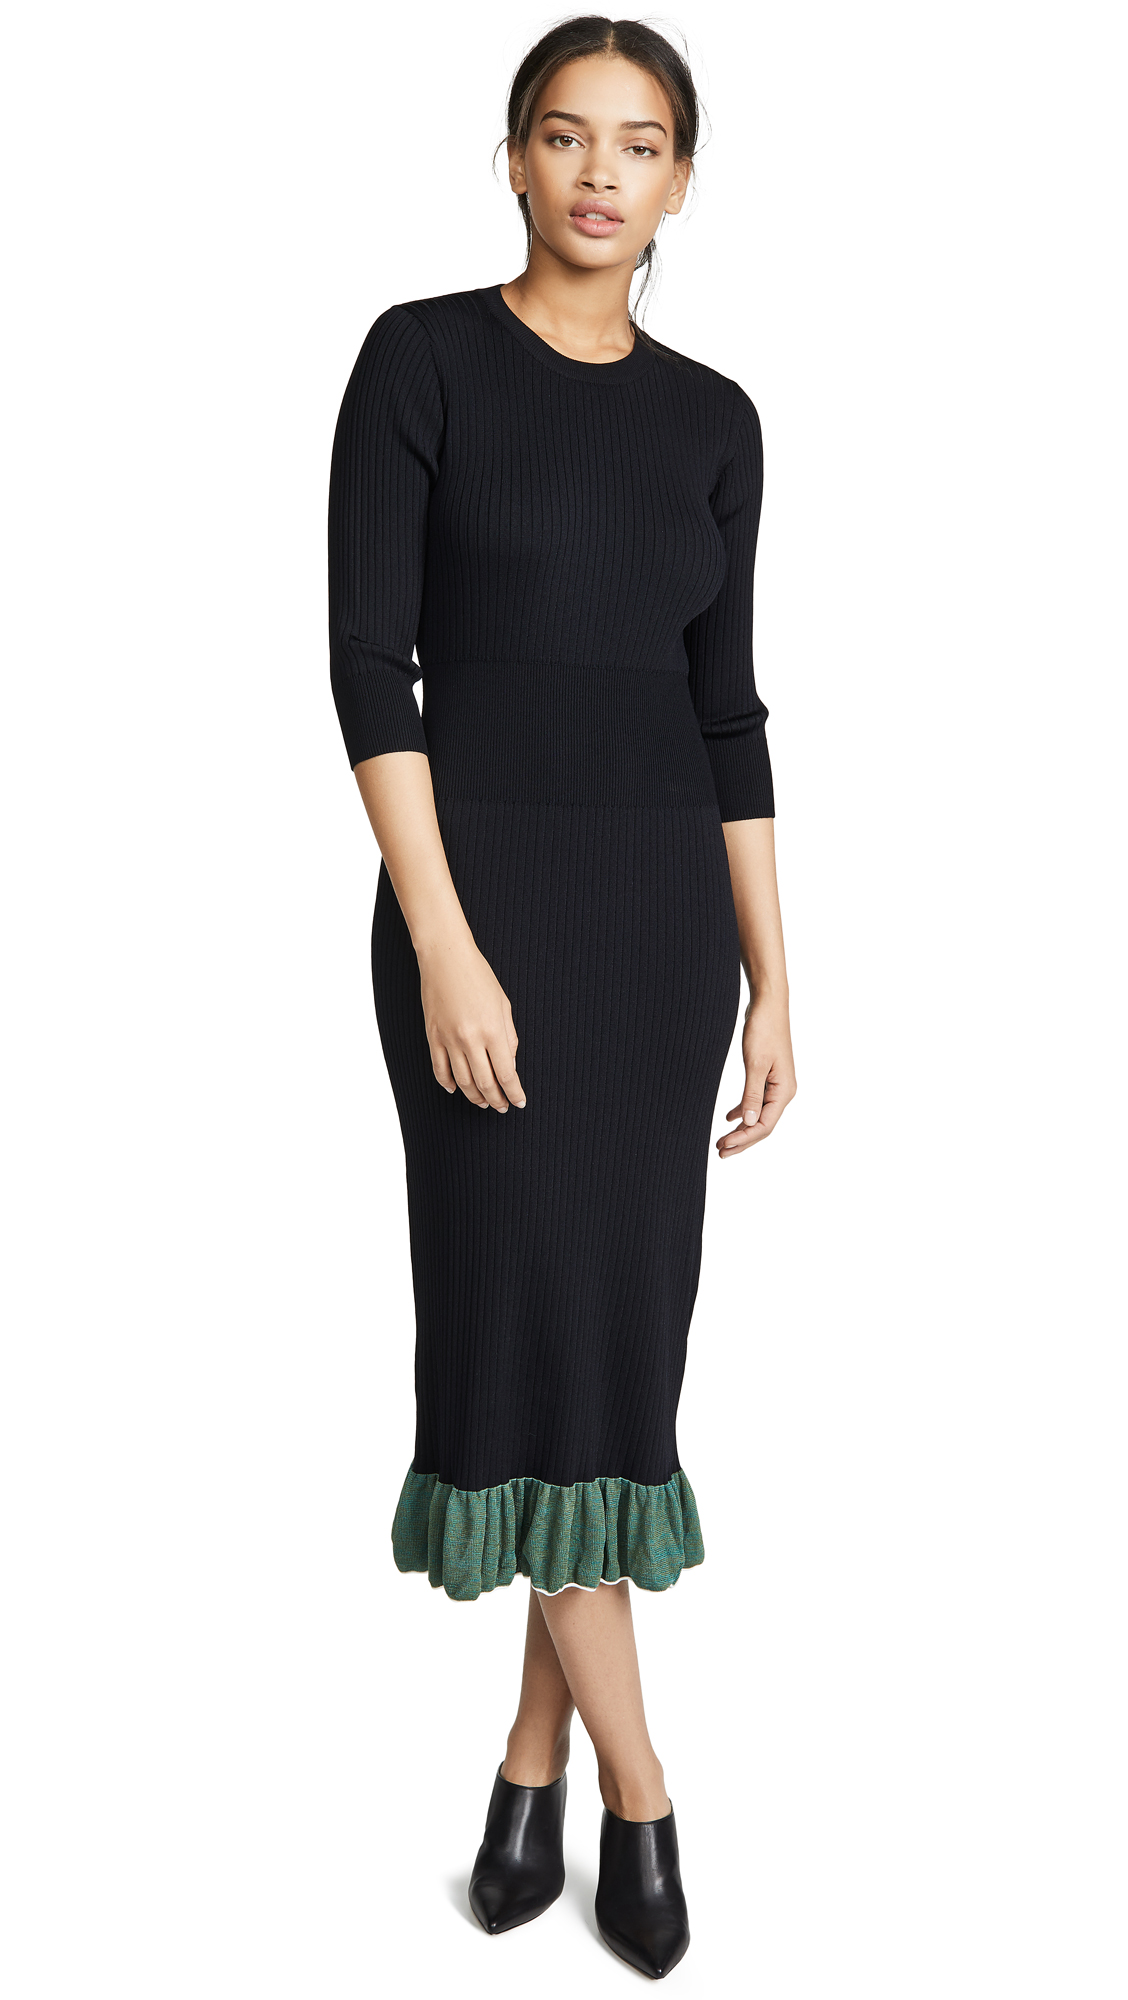 Toga WIDE RIB KNIT DRESS